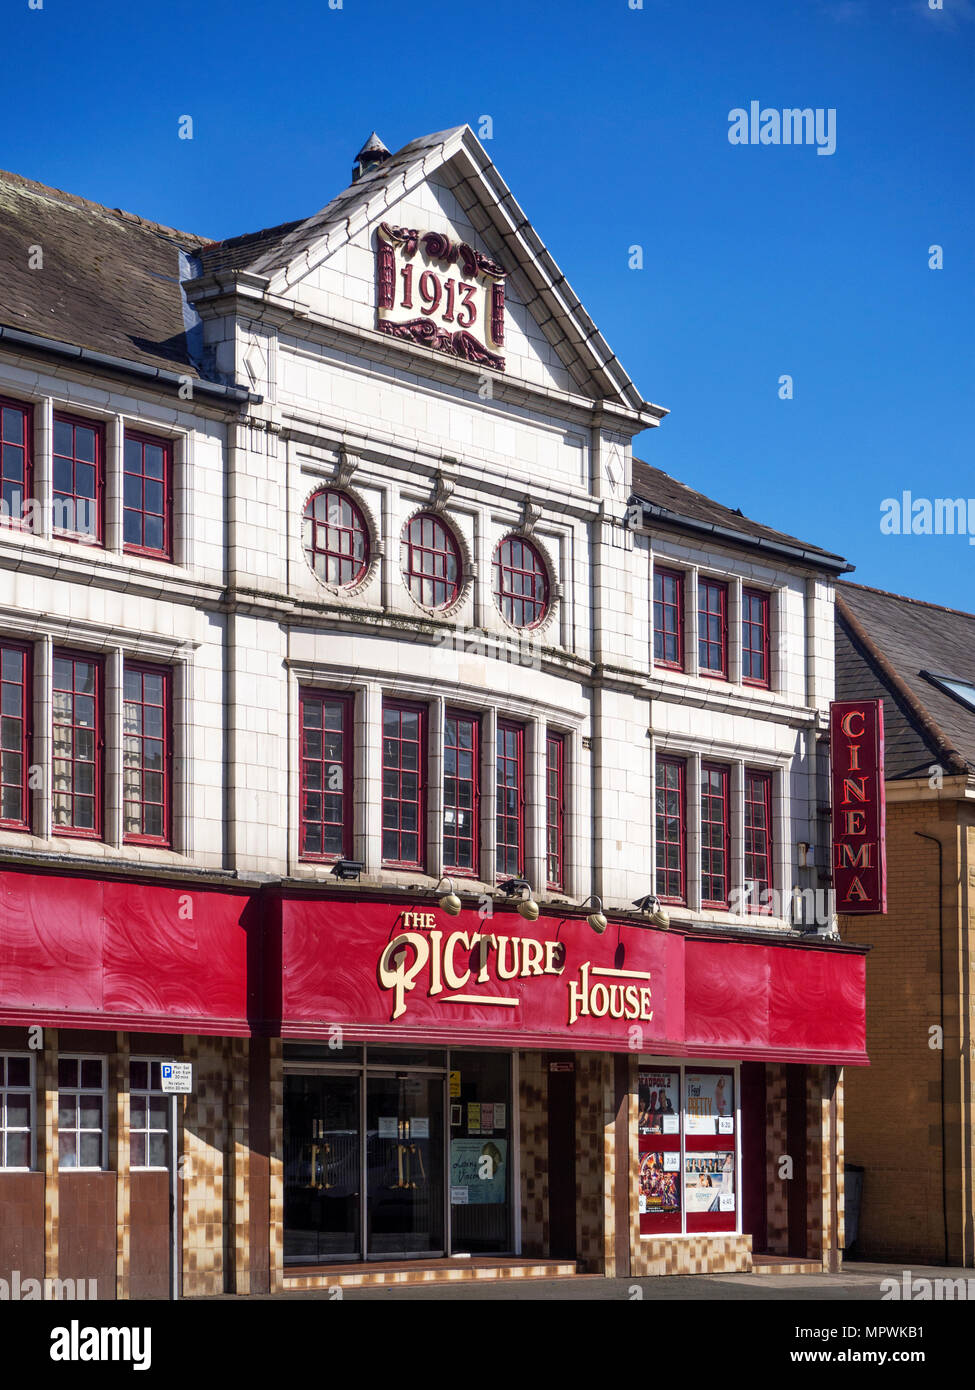 The Picture House Cinema at  Keighley West Yorkshire England - Stock Image